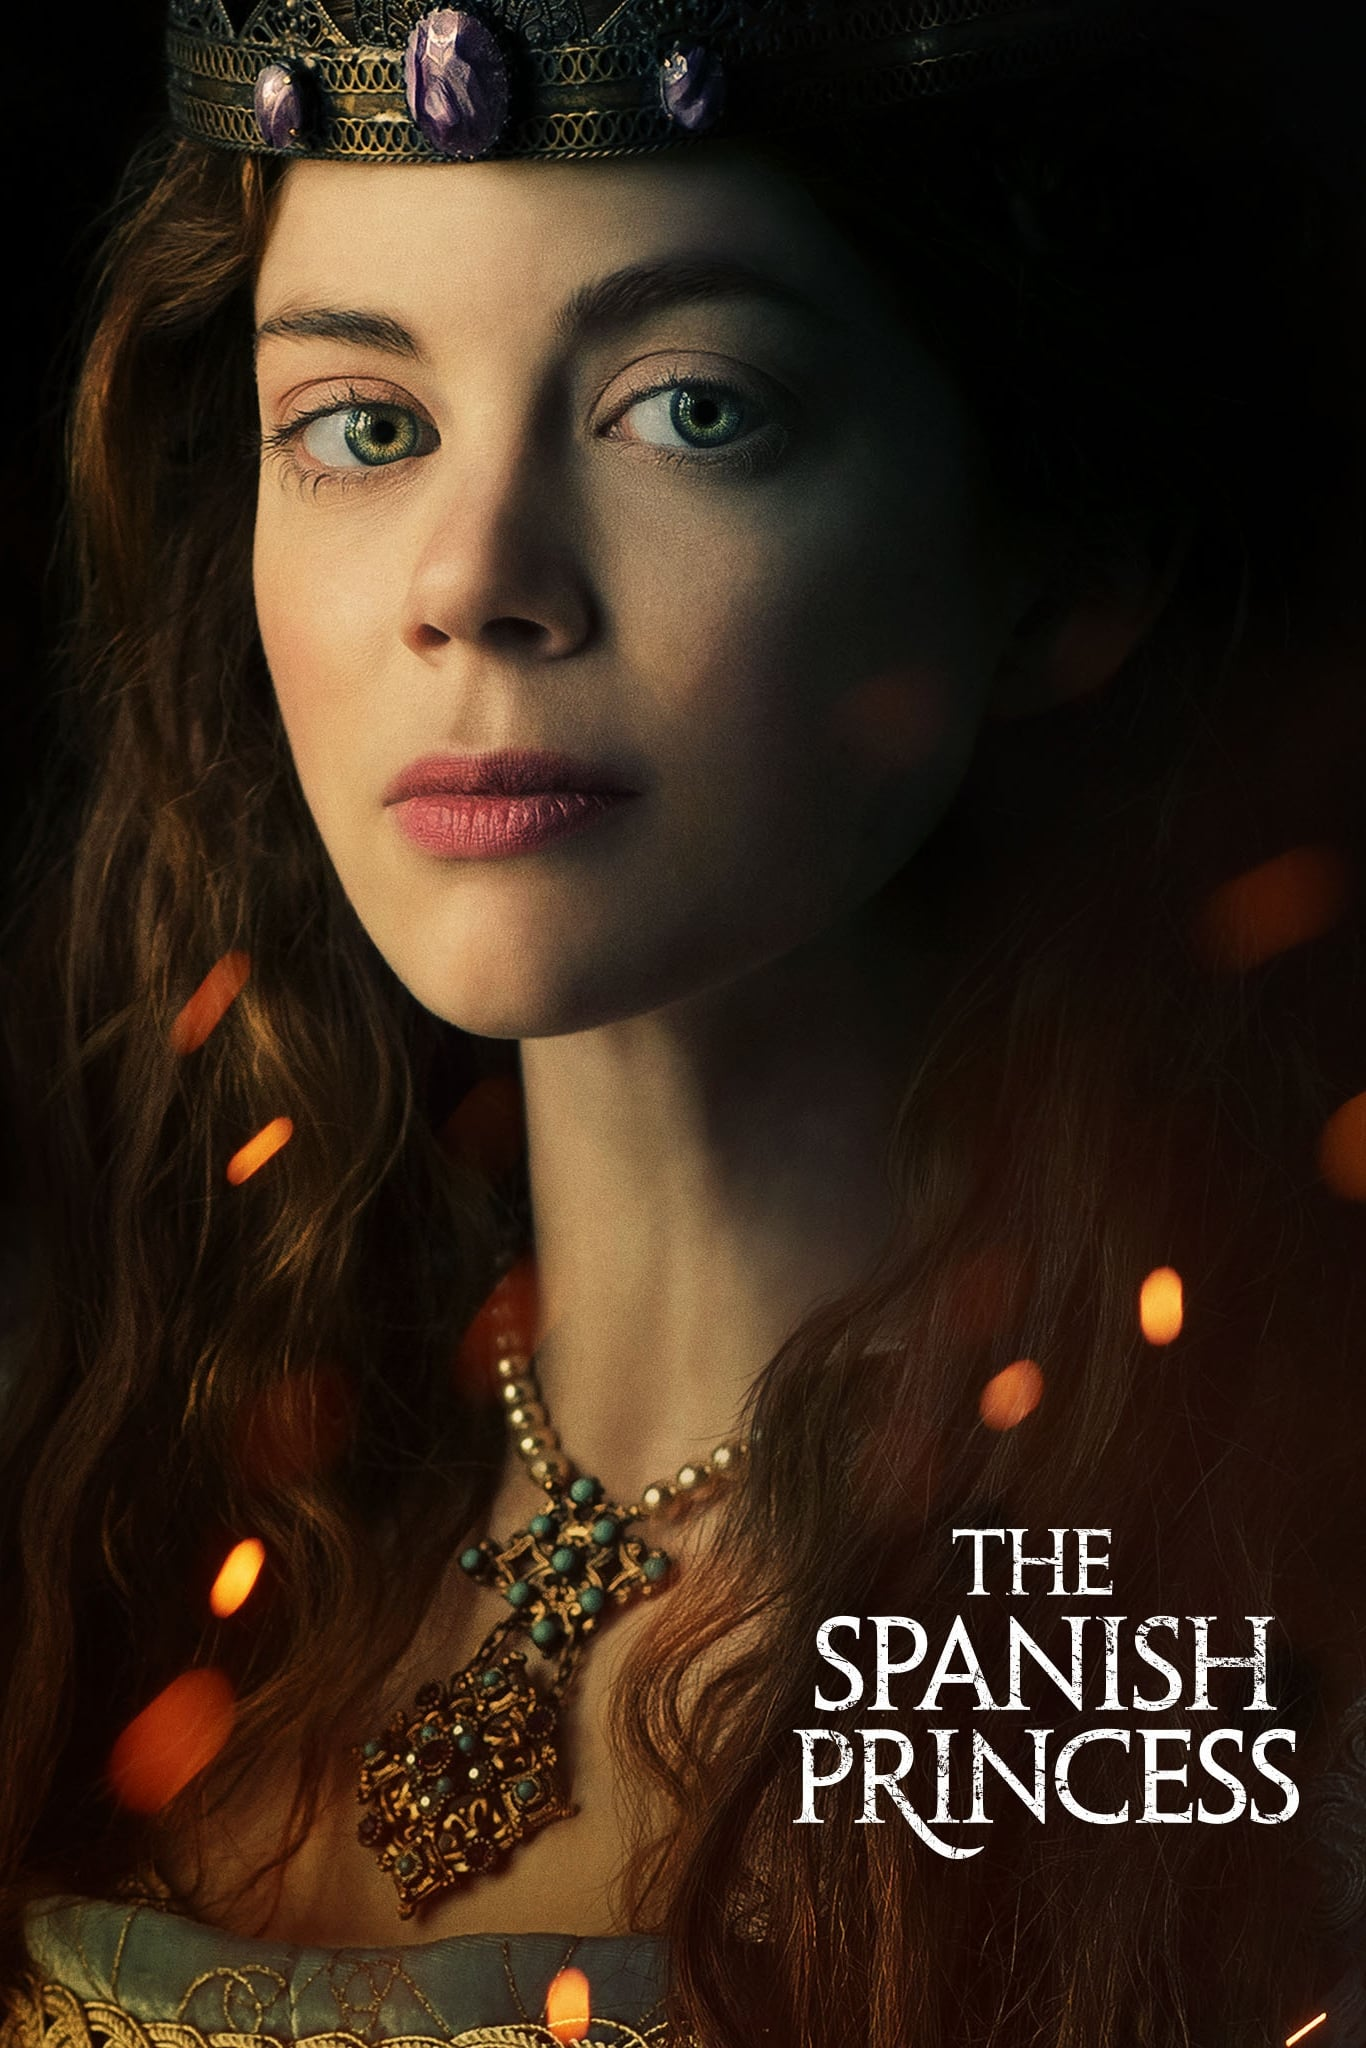 The Spanish Princess (2019)